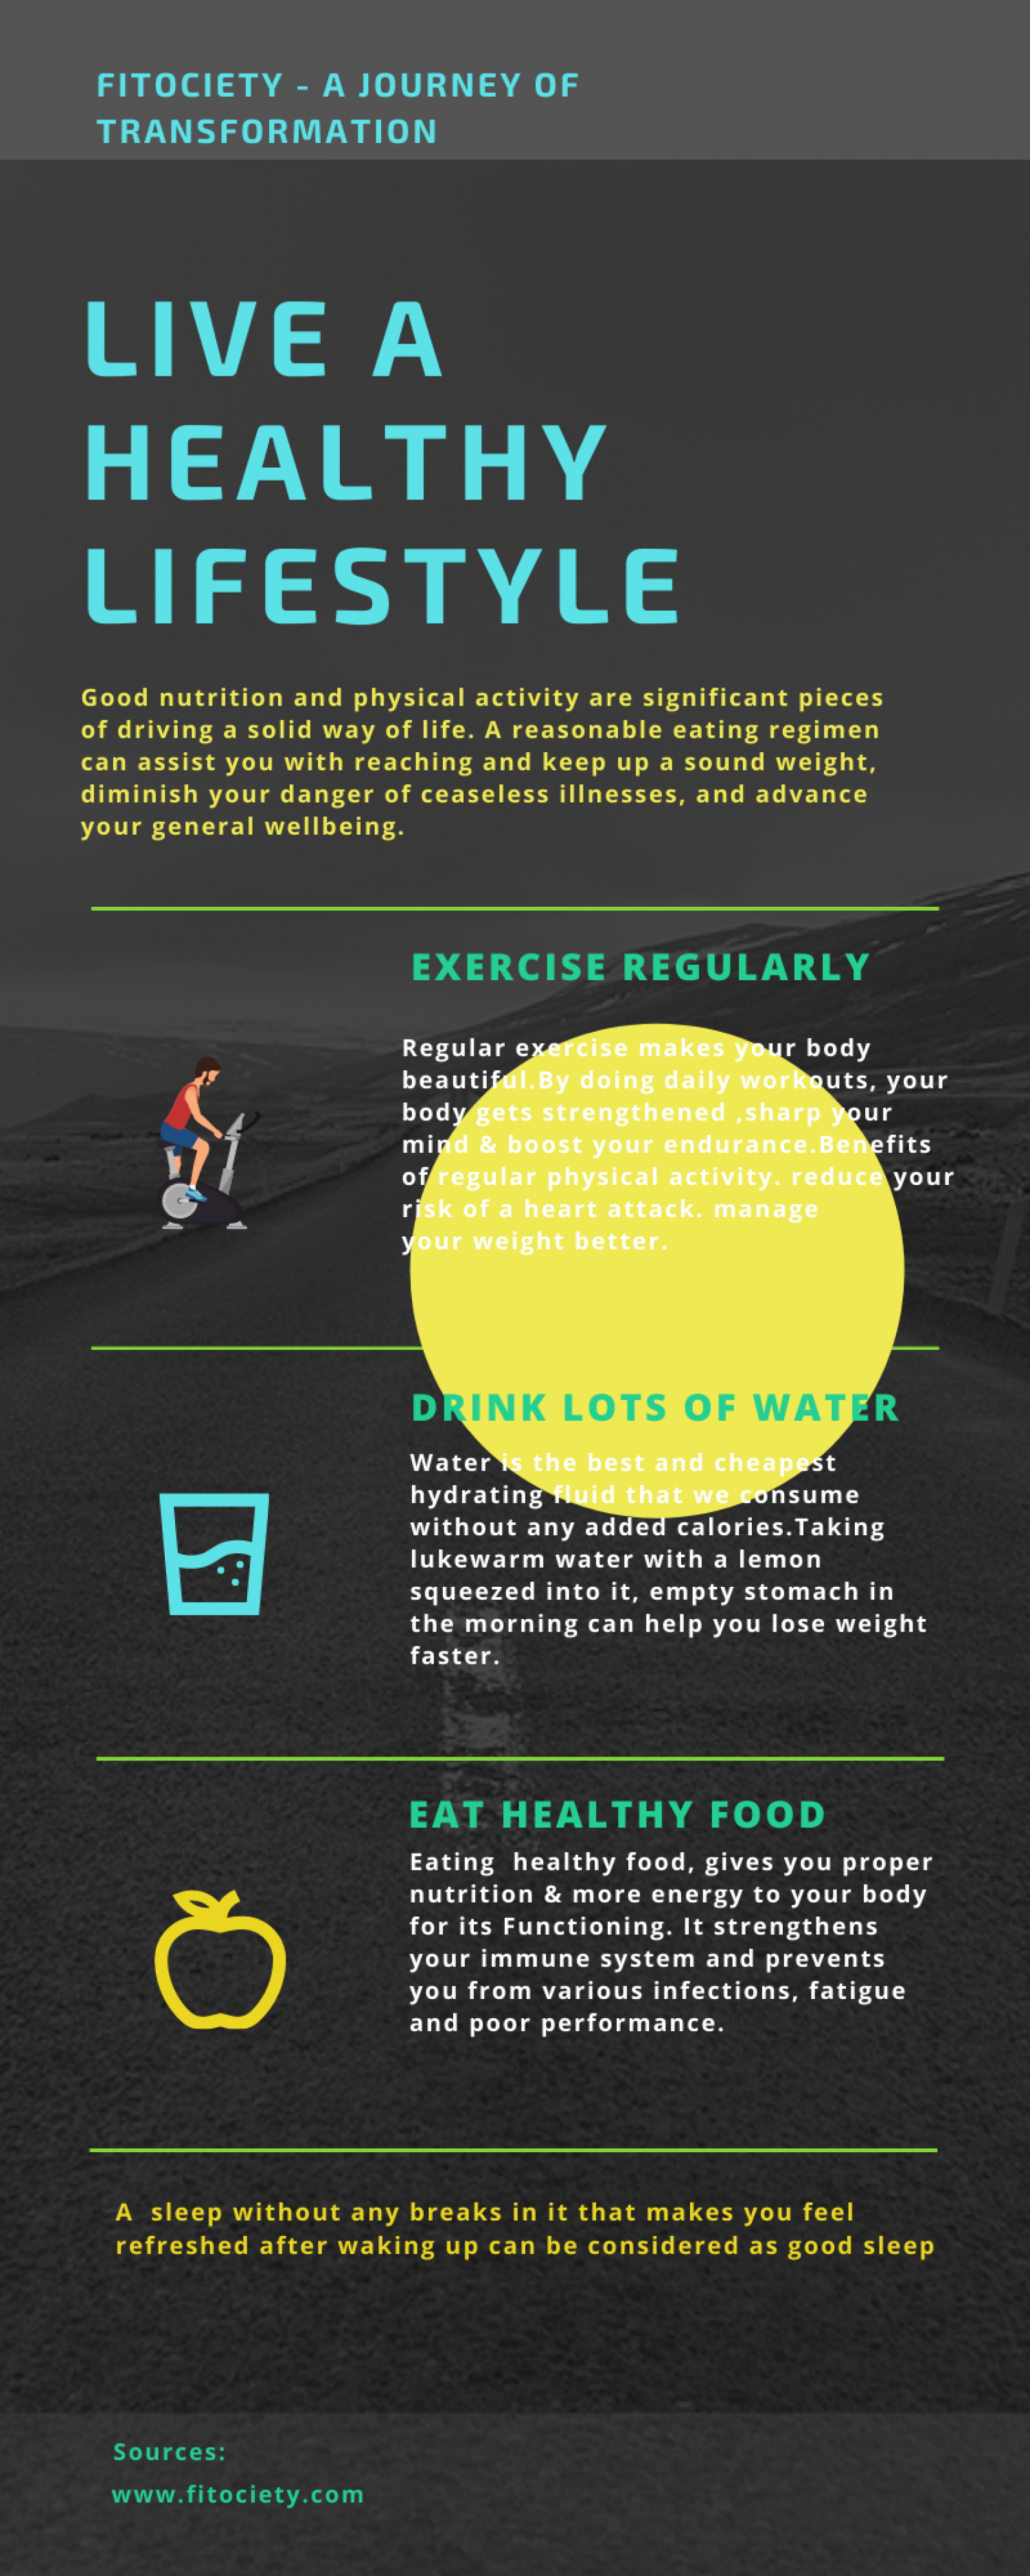 Weight lose Tips to Burn Calories   Fitociety- A Journey of Transformation Infographic